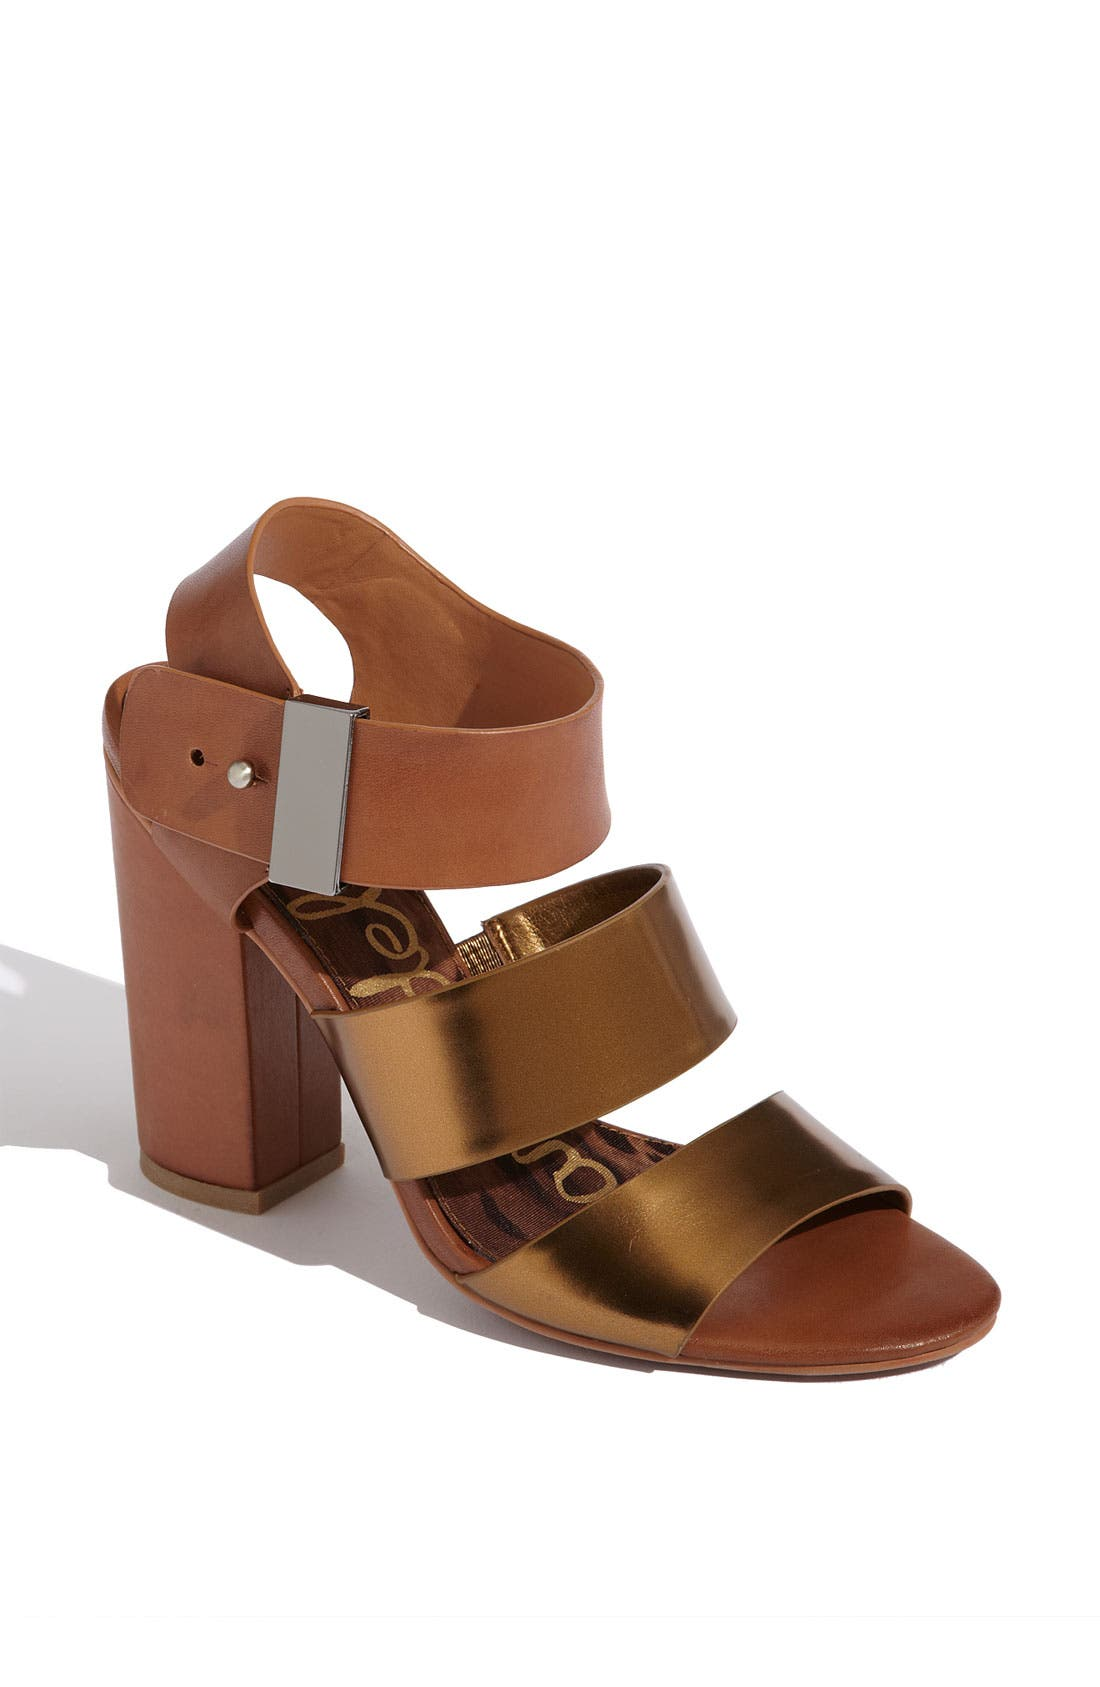 Alternate Image 1 Selected - Sam Edelman 'Yelena' Sandal